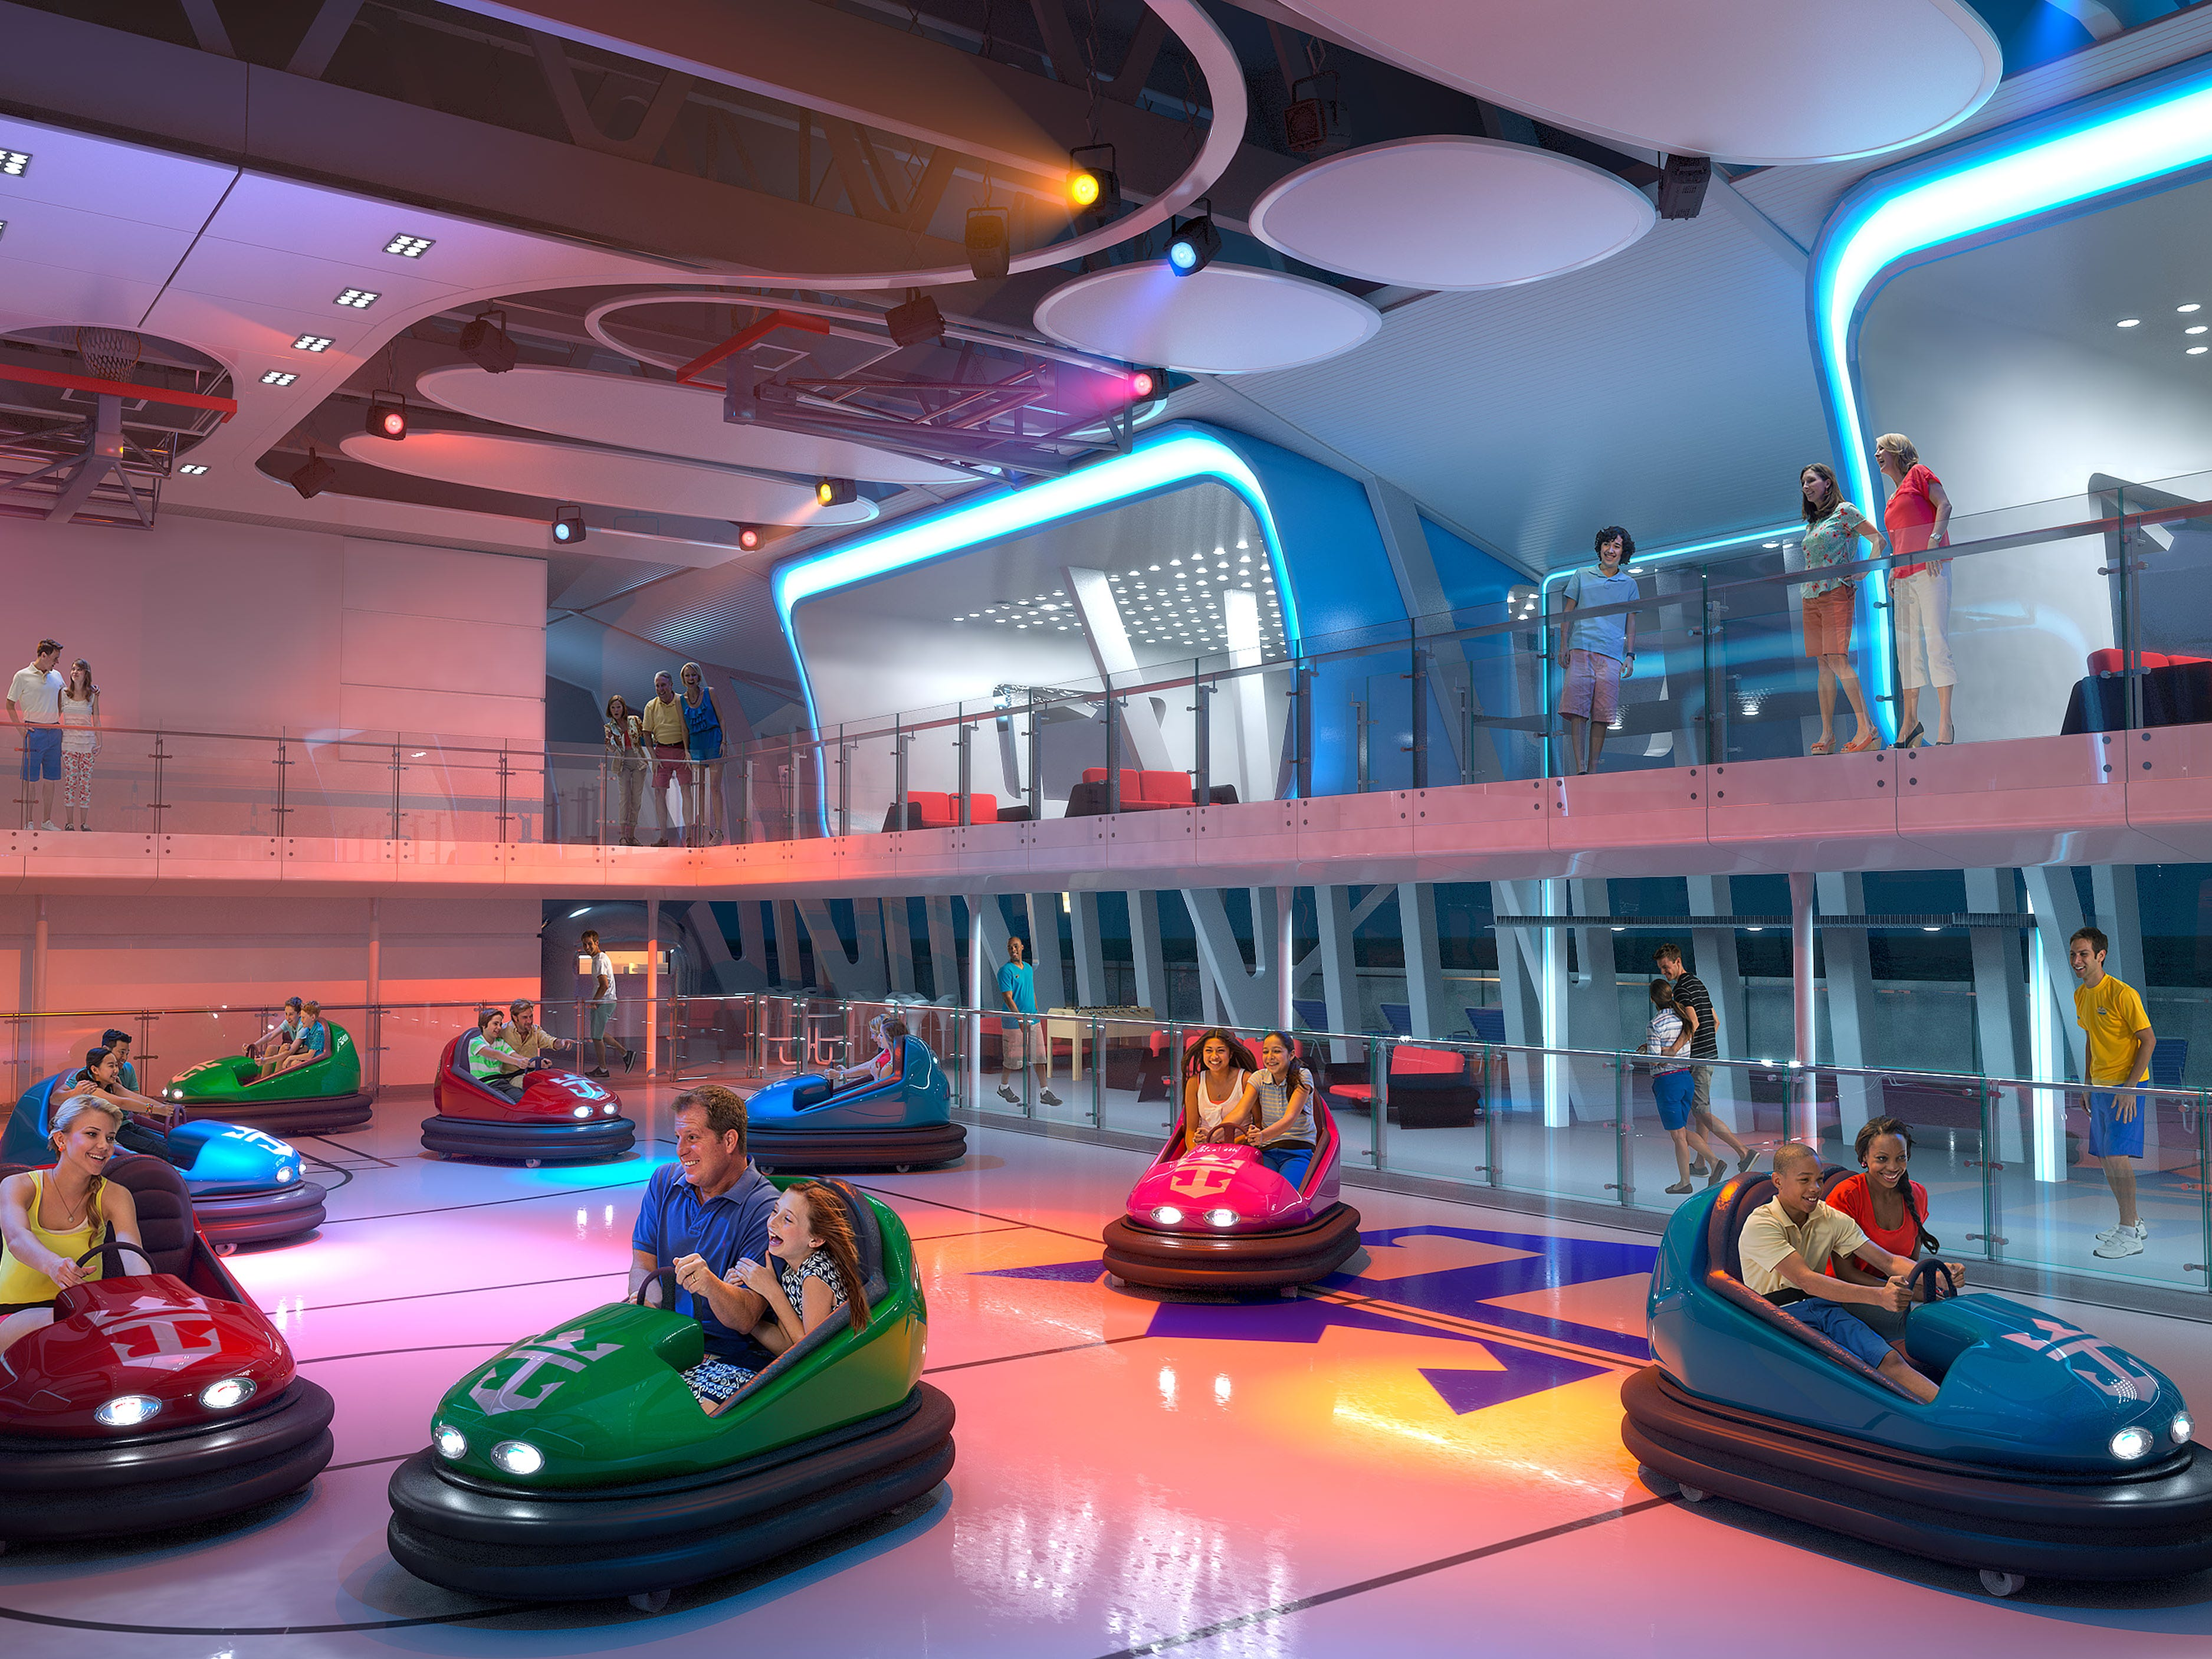 Among the most unusual deck-top attractions to have debuted on cruise ships in recent years are the enclosed bumper car rinks located at the top of Royal Caribbean's Quantum Class vessels.